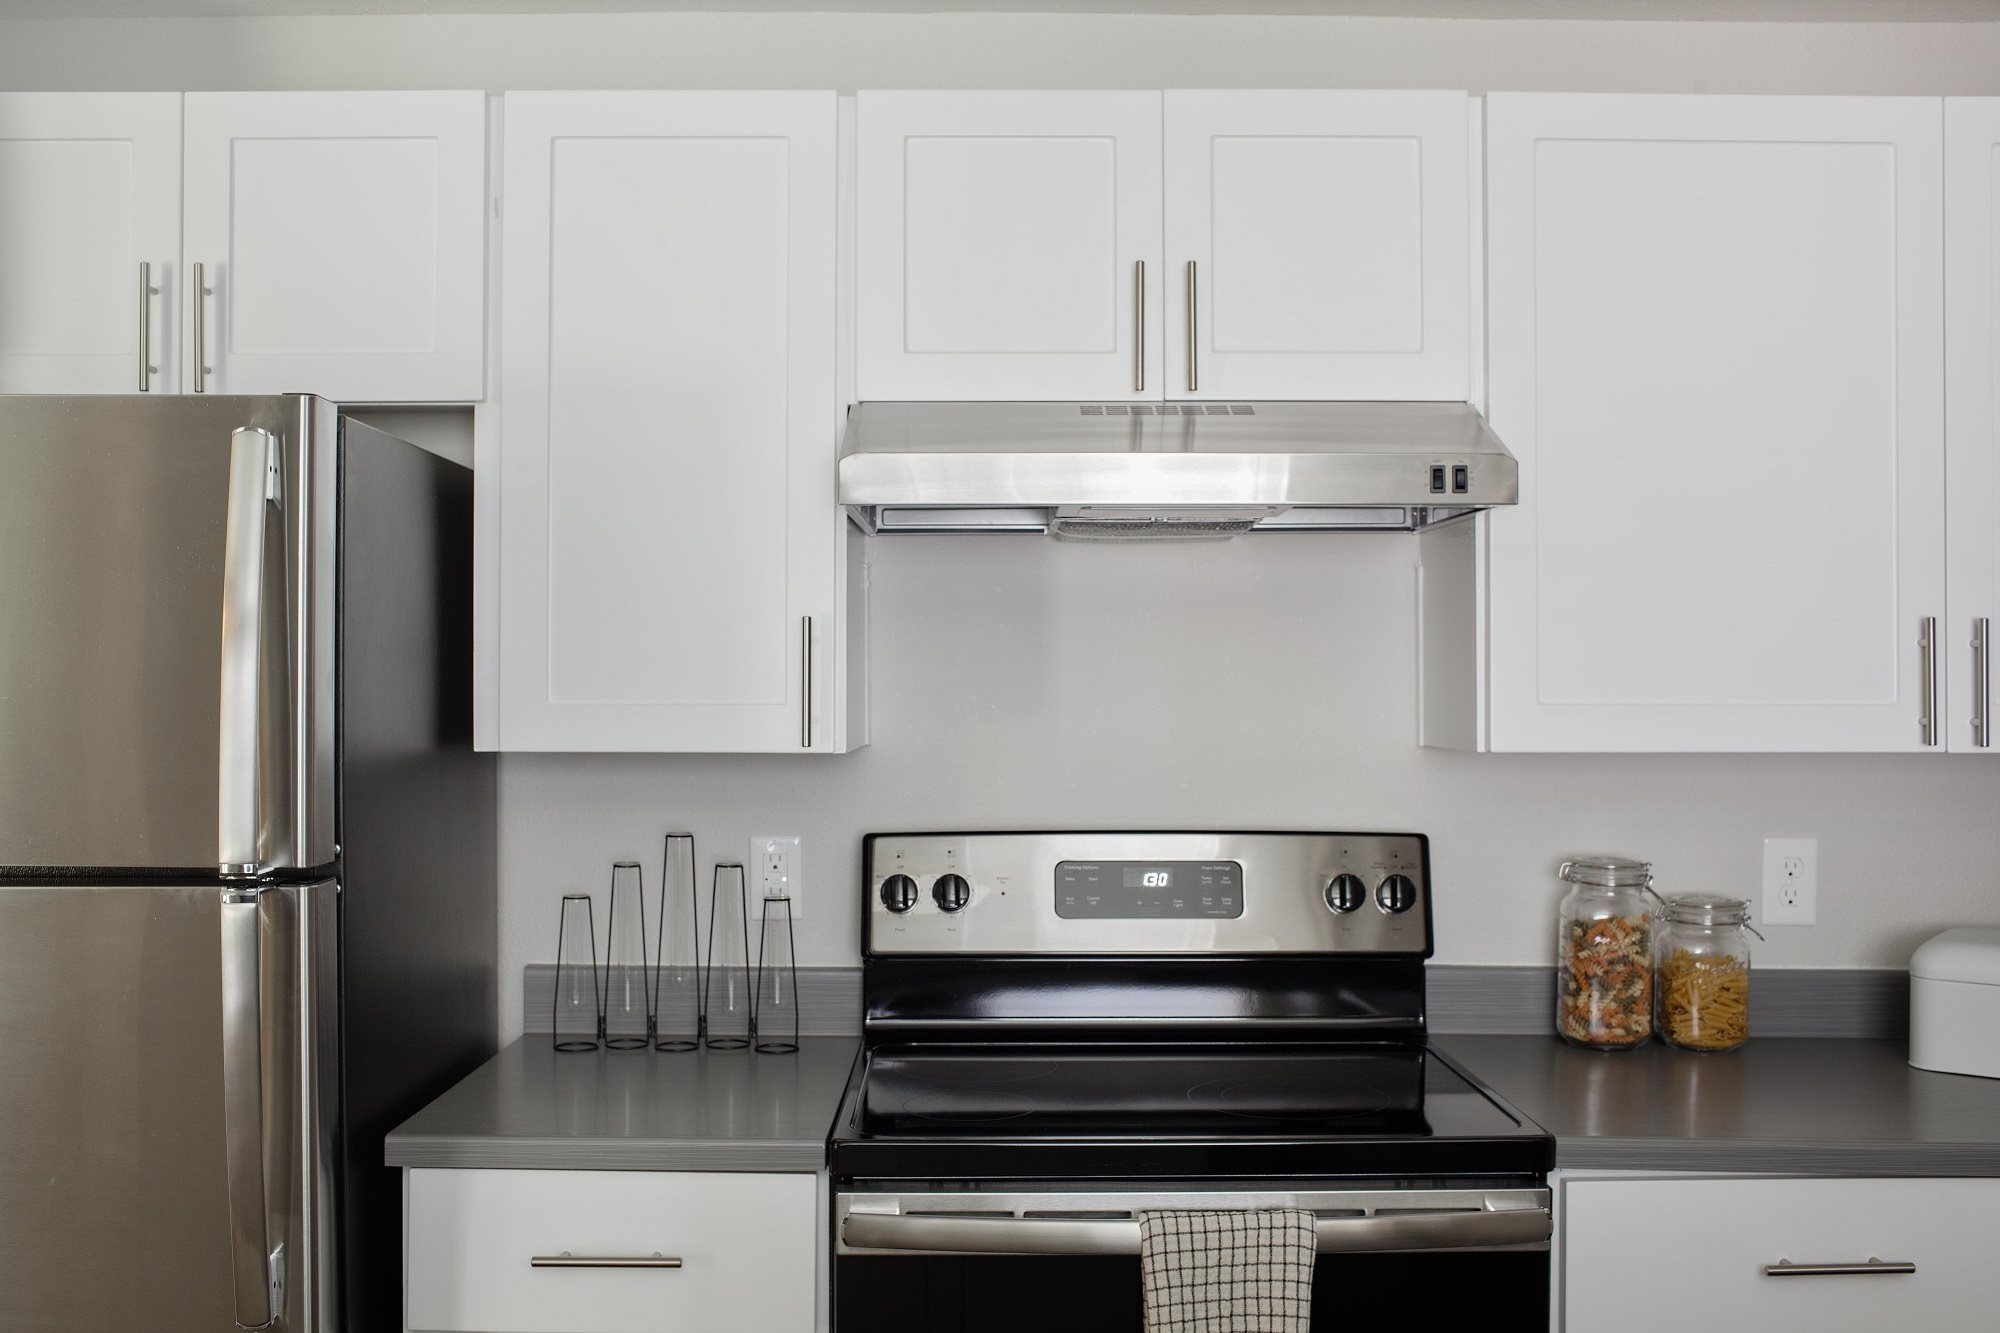 The Pointe Apartments Kitchen Counter and Appliances